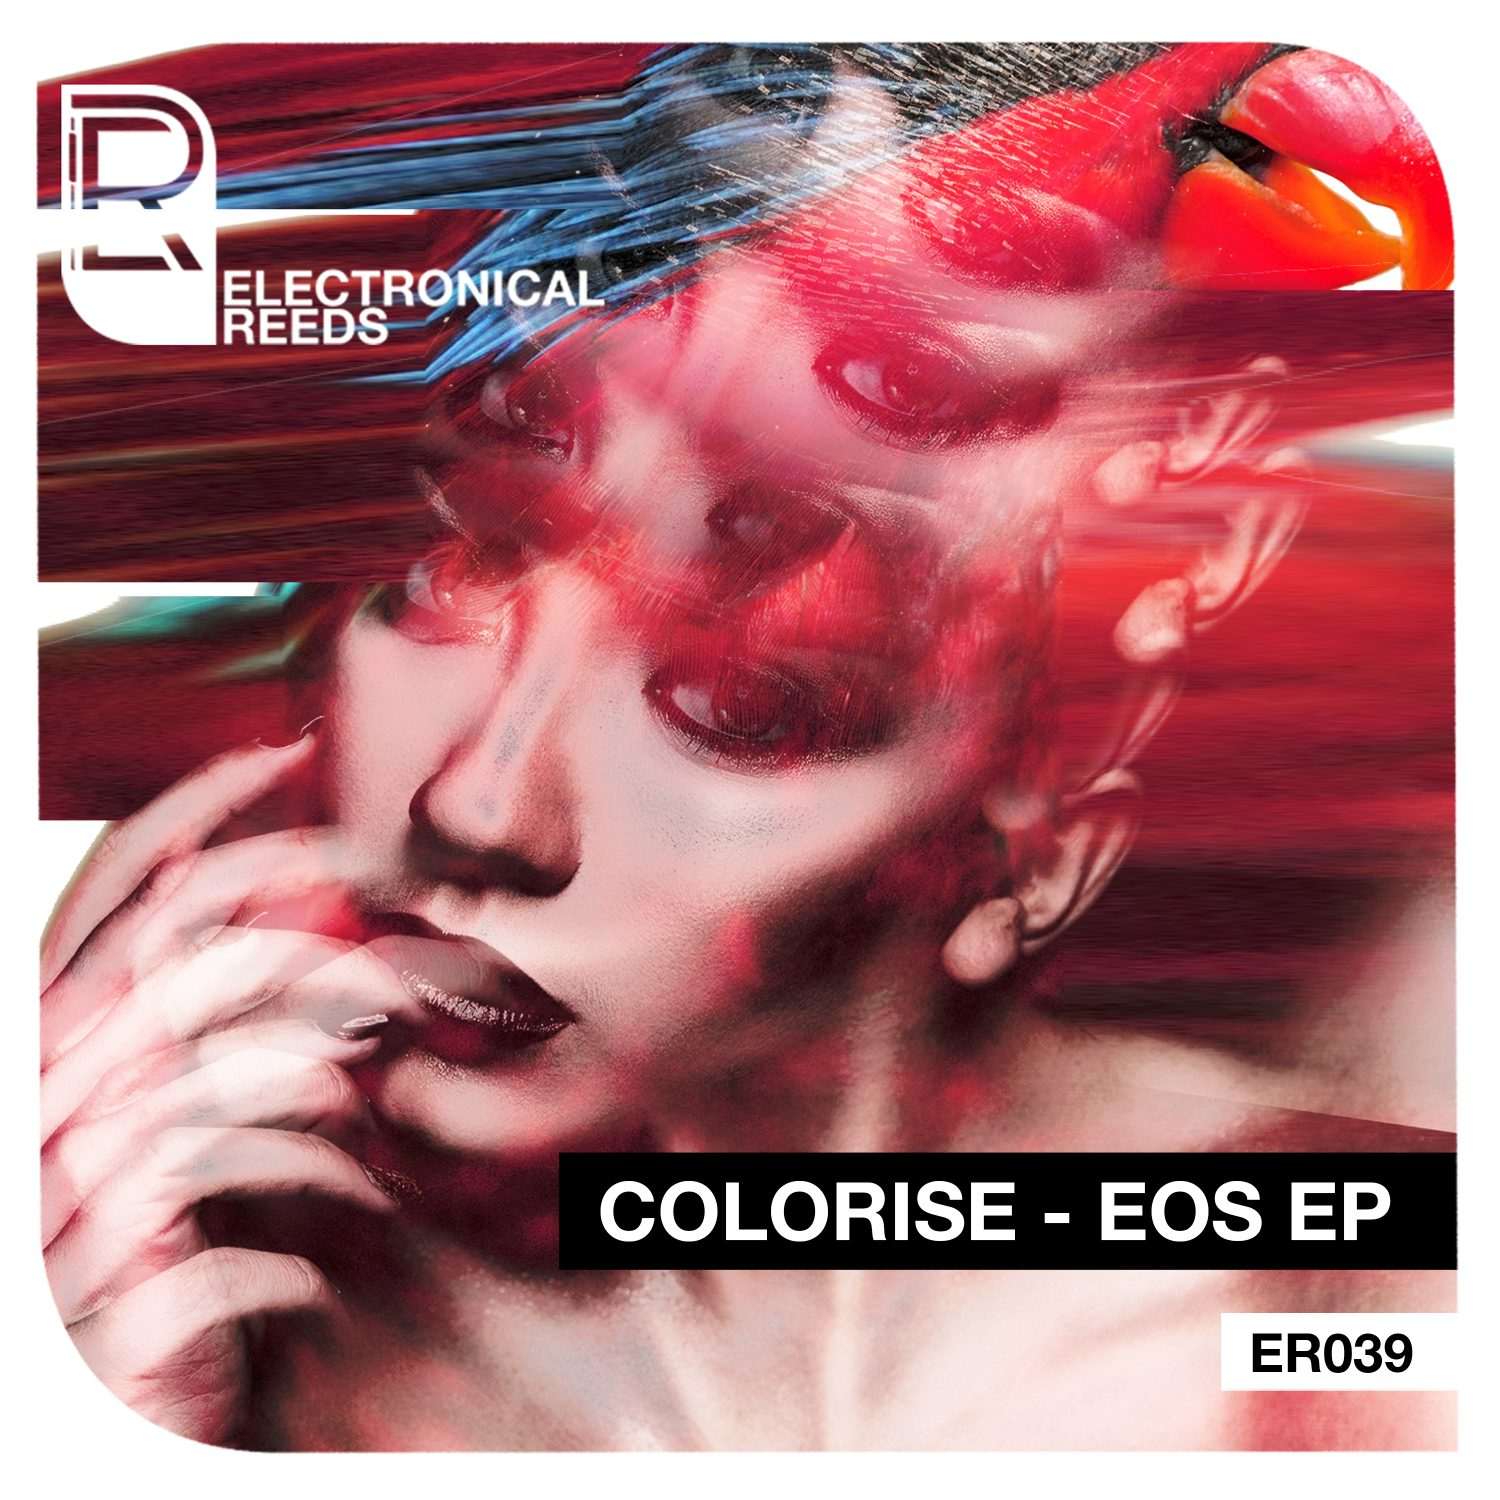 Colorise - Eos EP - Electronical Reeds